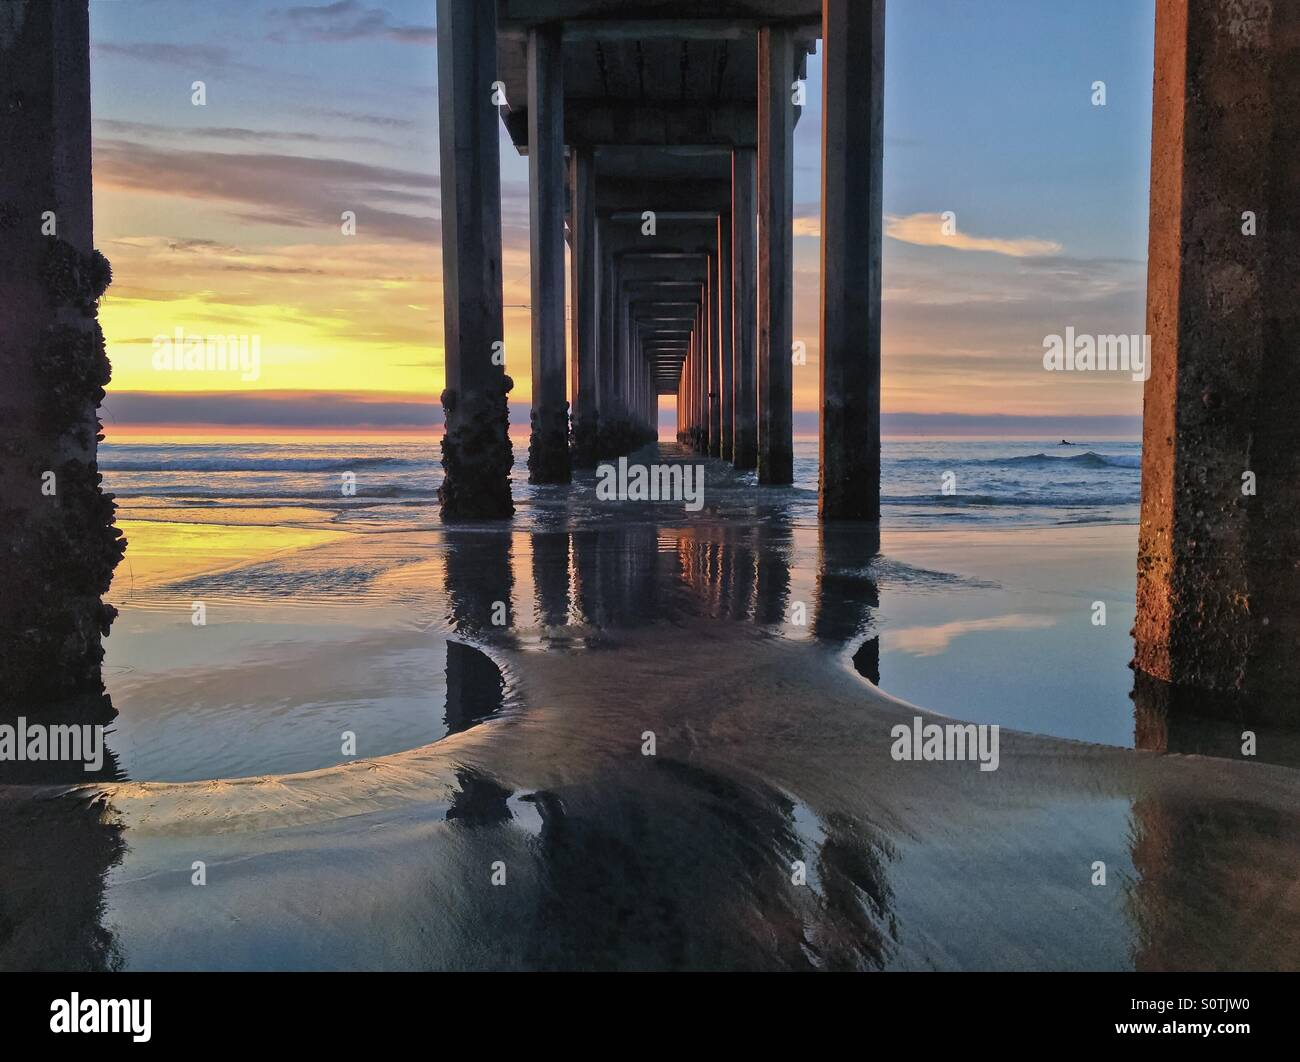 Underneath a beach pier at sunset with water reflections, Scripps Pier, California, USA Stock Photo